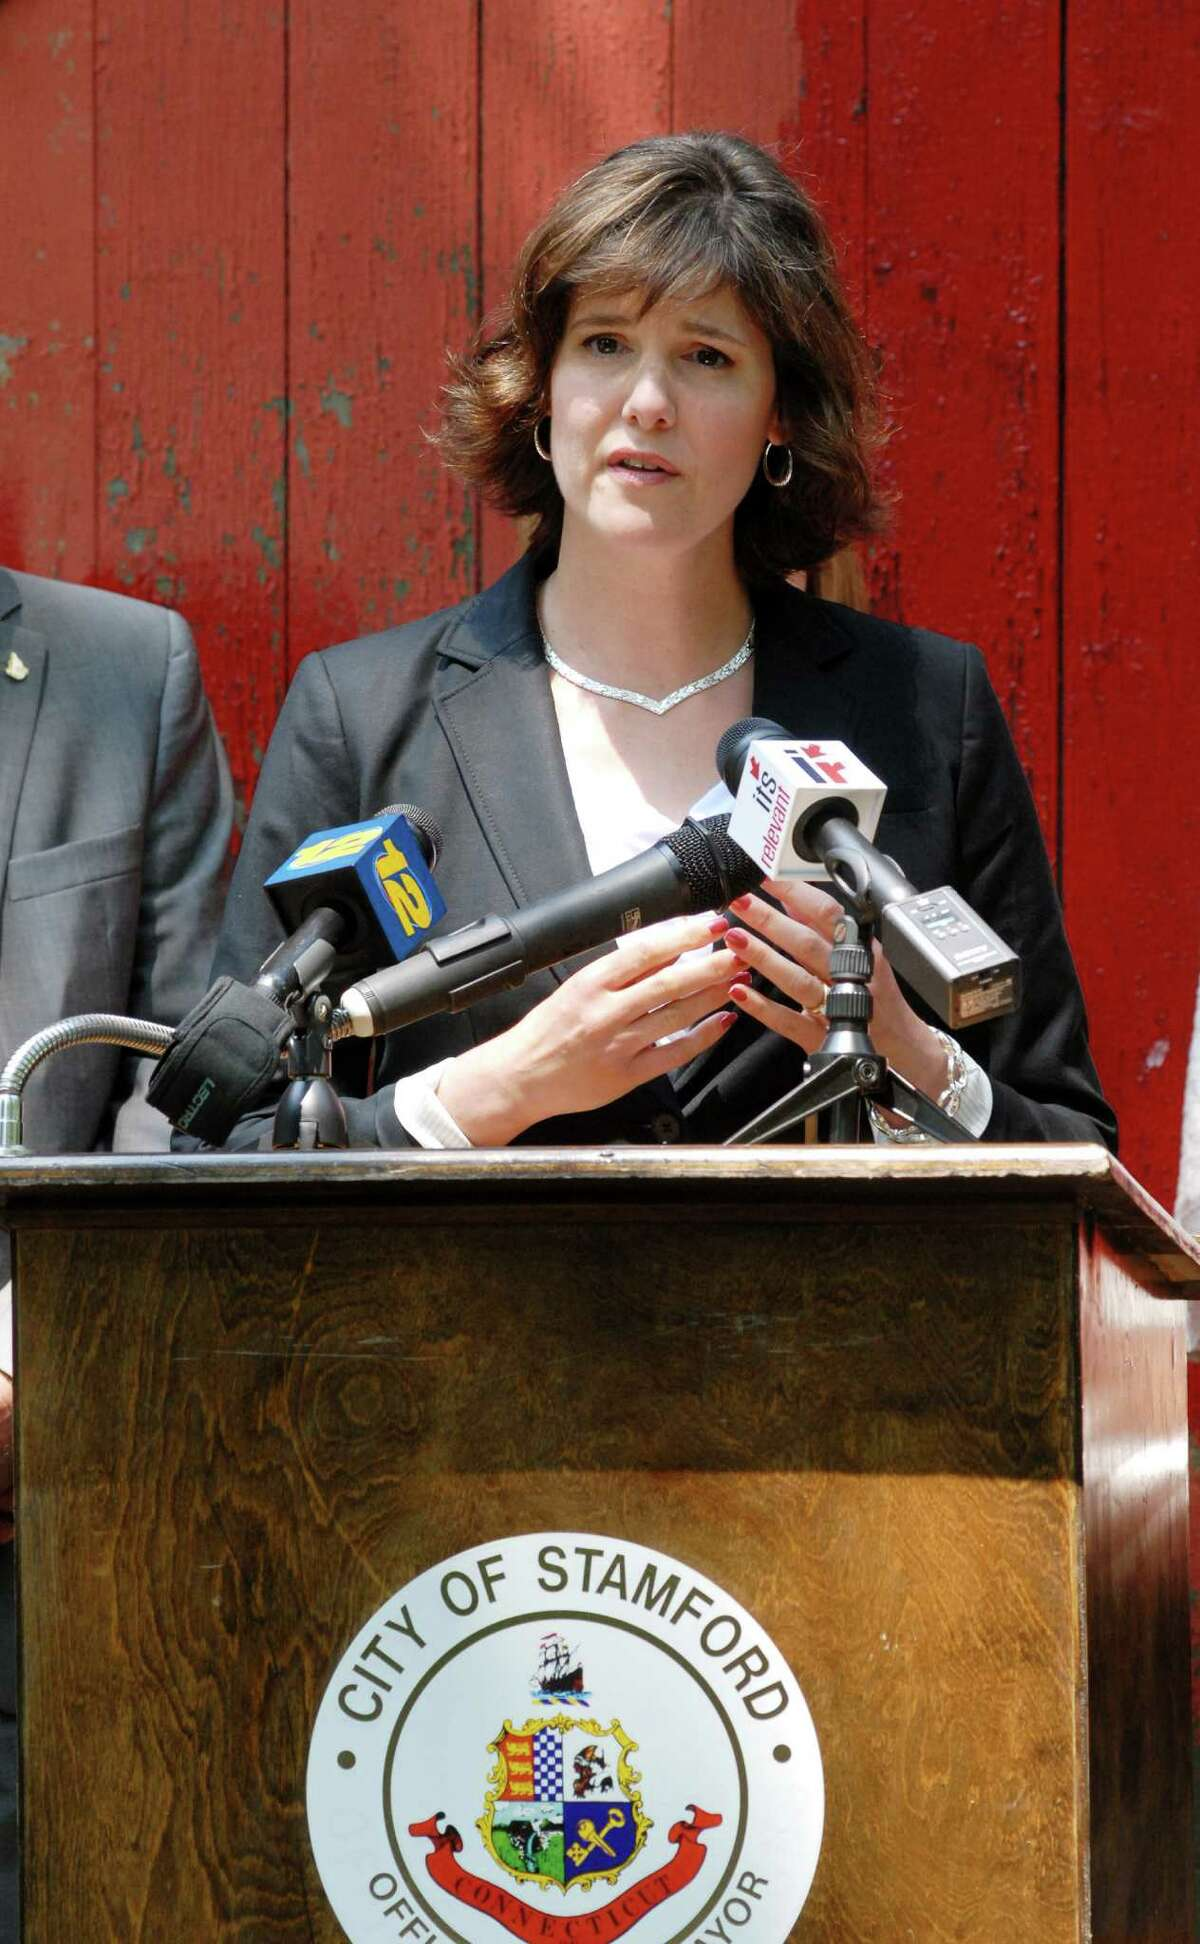 Heather Bernatchez, co-founder of The Wildlife Center of Fairfield County, annouces a lease agreement with the City of Stamford (Conn.) for the Red Barn at Mianus River Park in Stamford on Monday June 11, 2012.